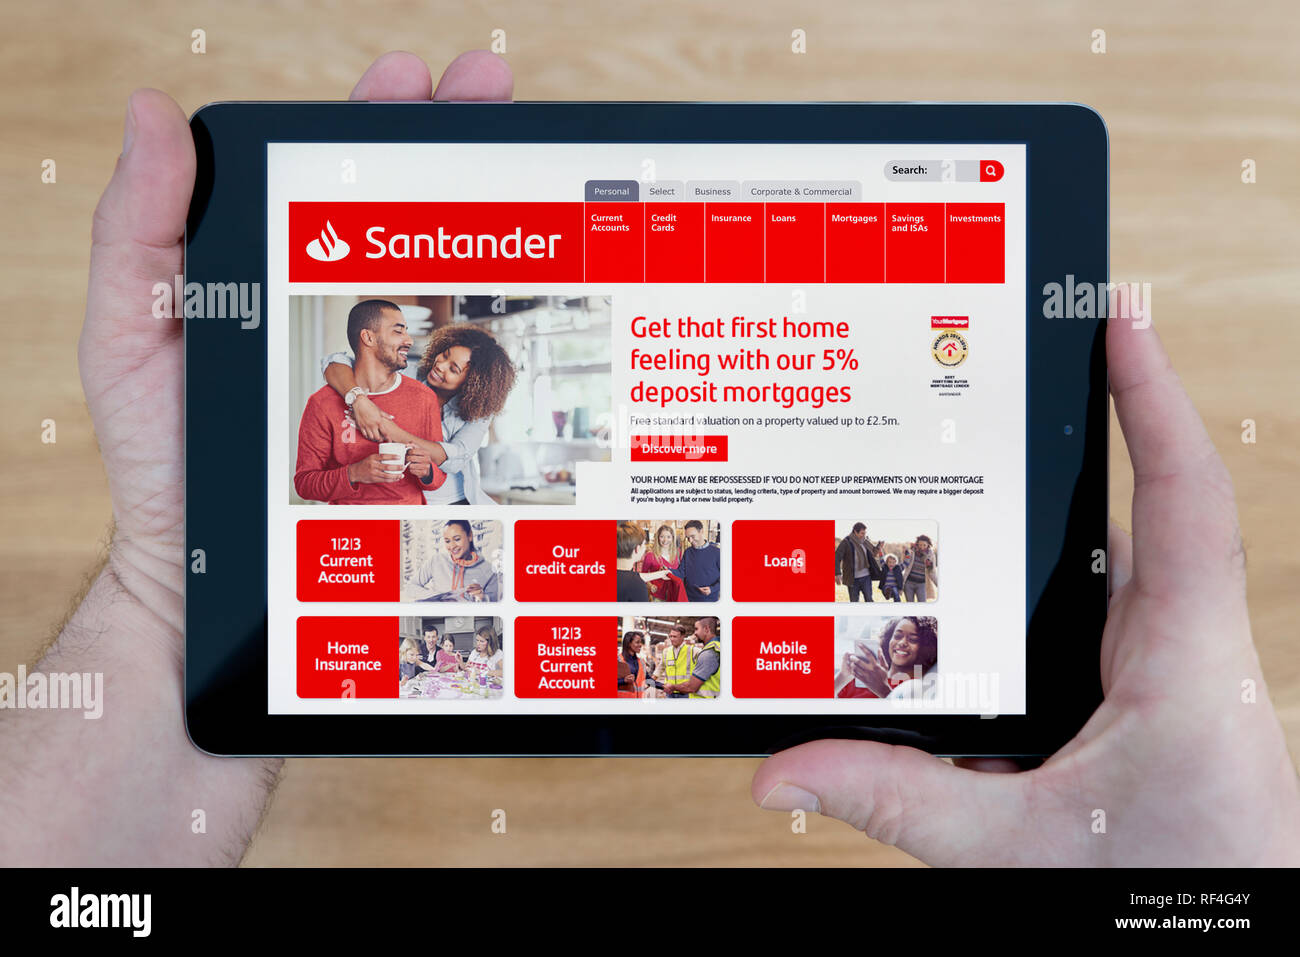 A man looks at the Santander Bank website on his iPad tablet device, shot against a wooden table top background (Editorial use only). - Stock Image